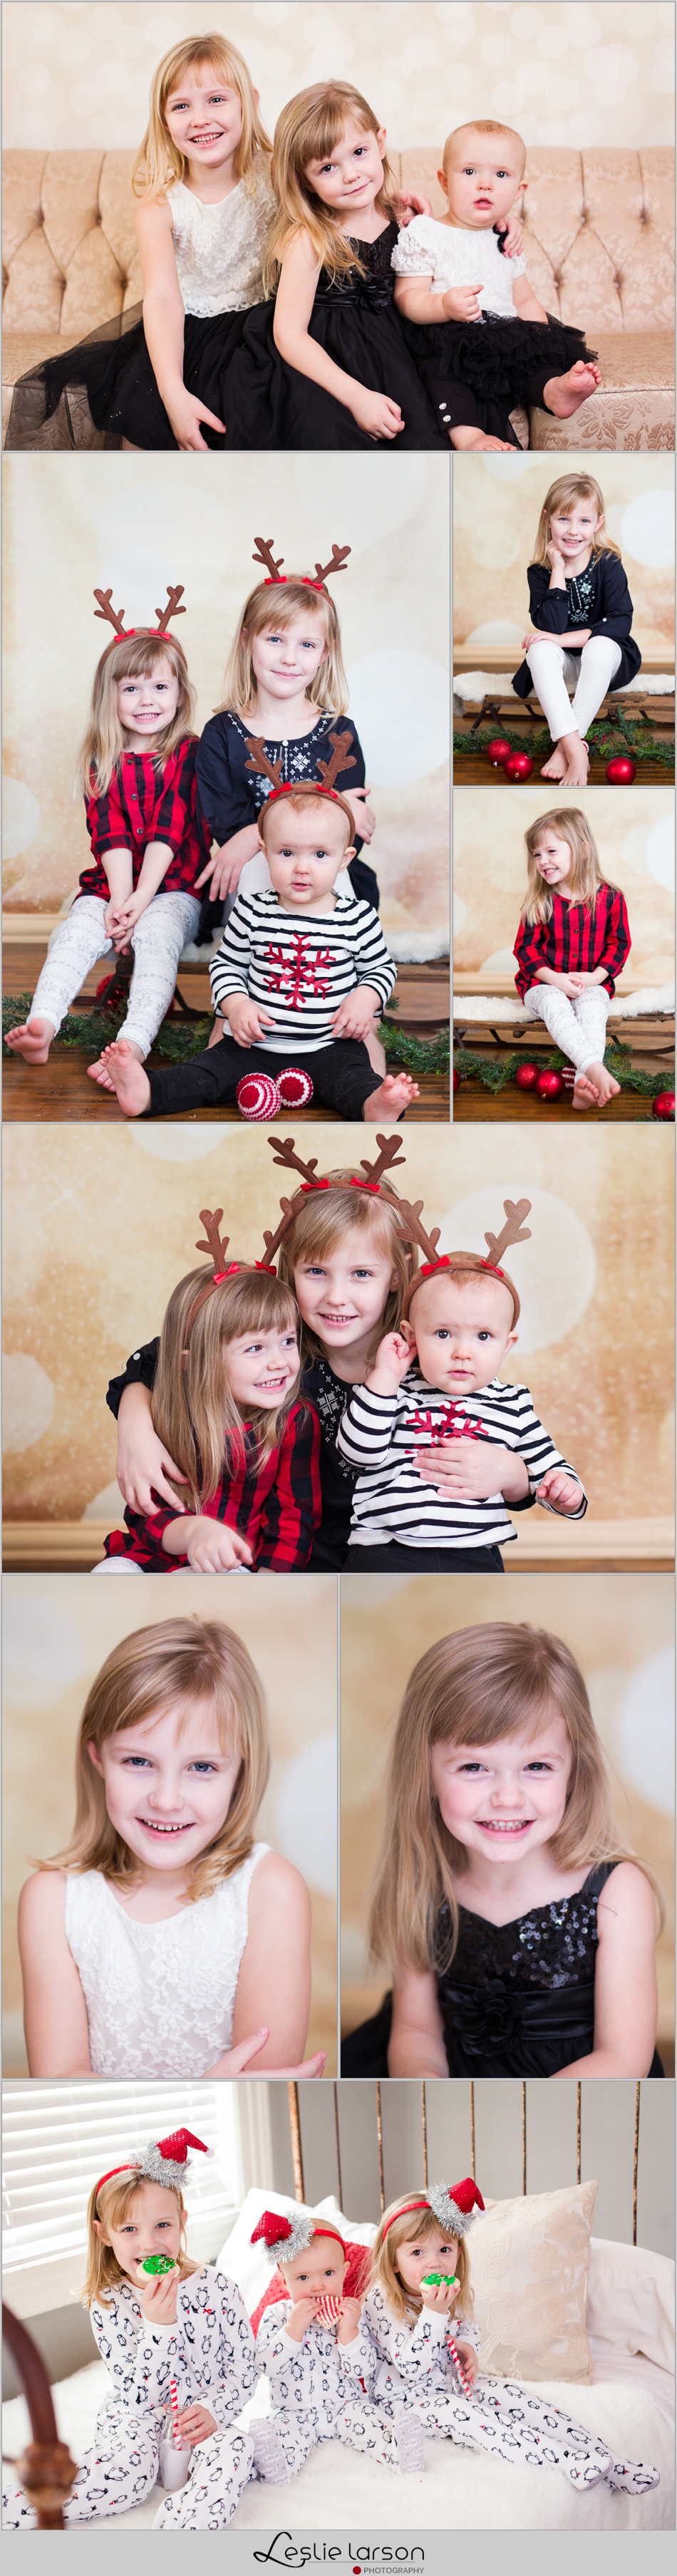 3 sisters studio semple mansion christmas leslie larson photography